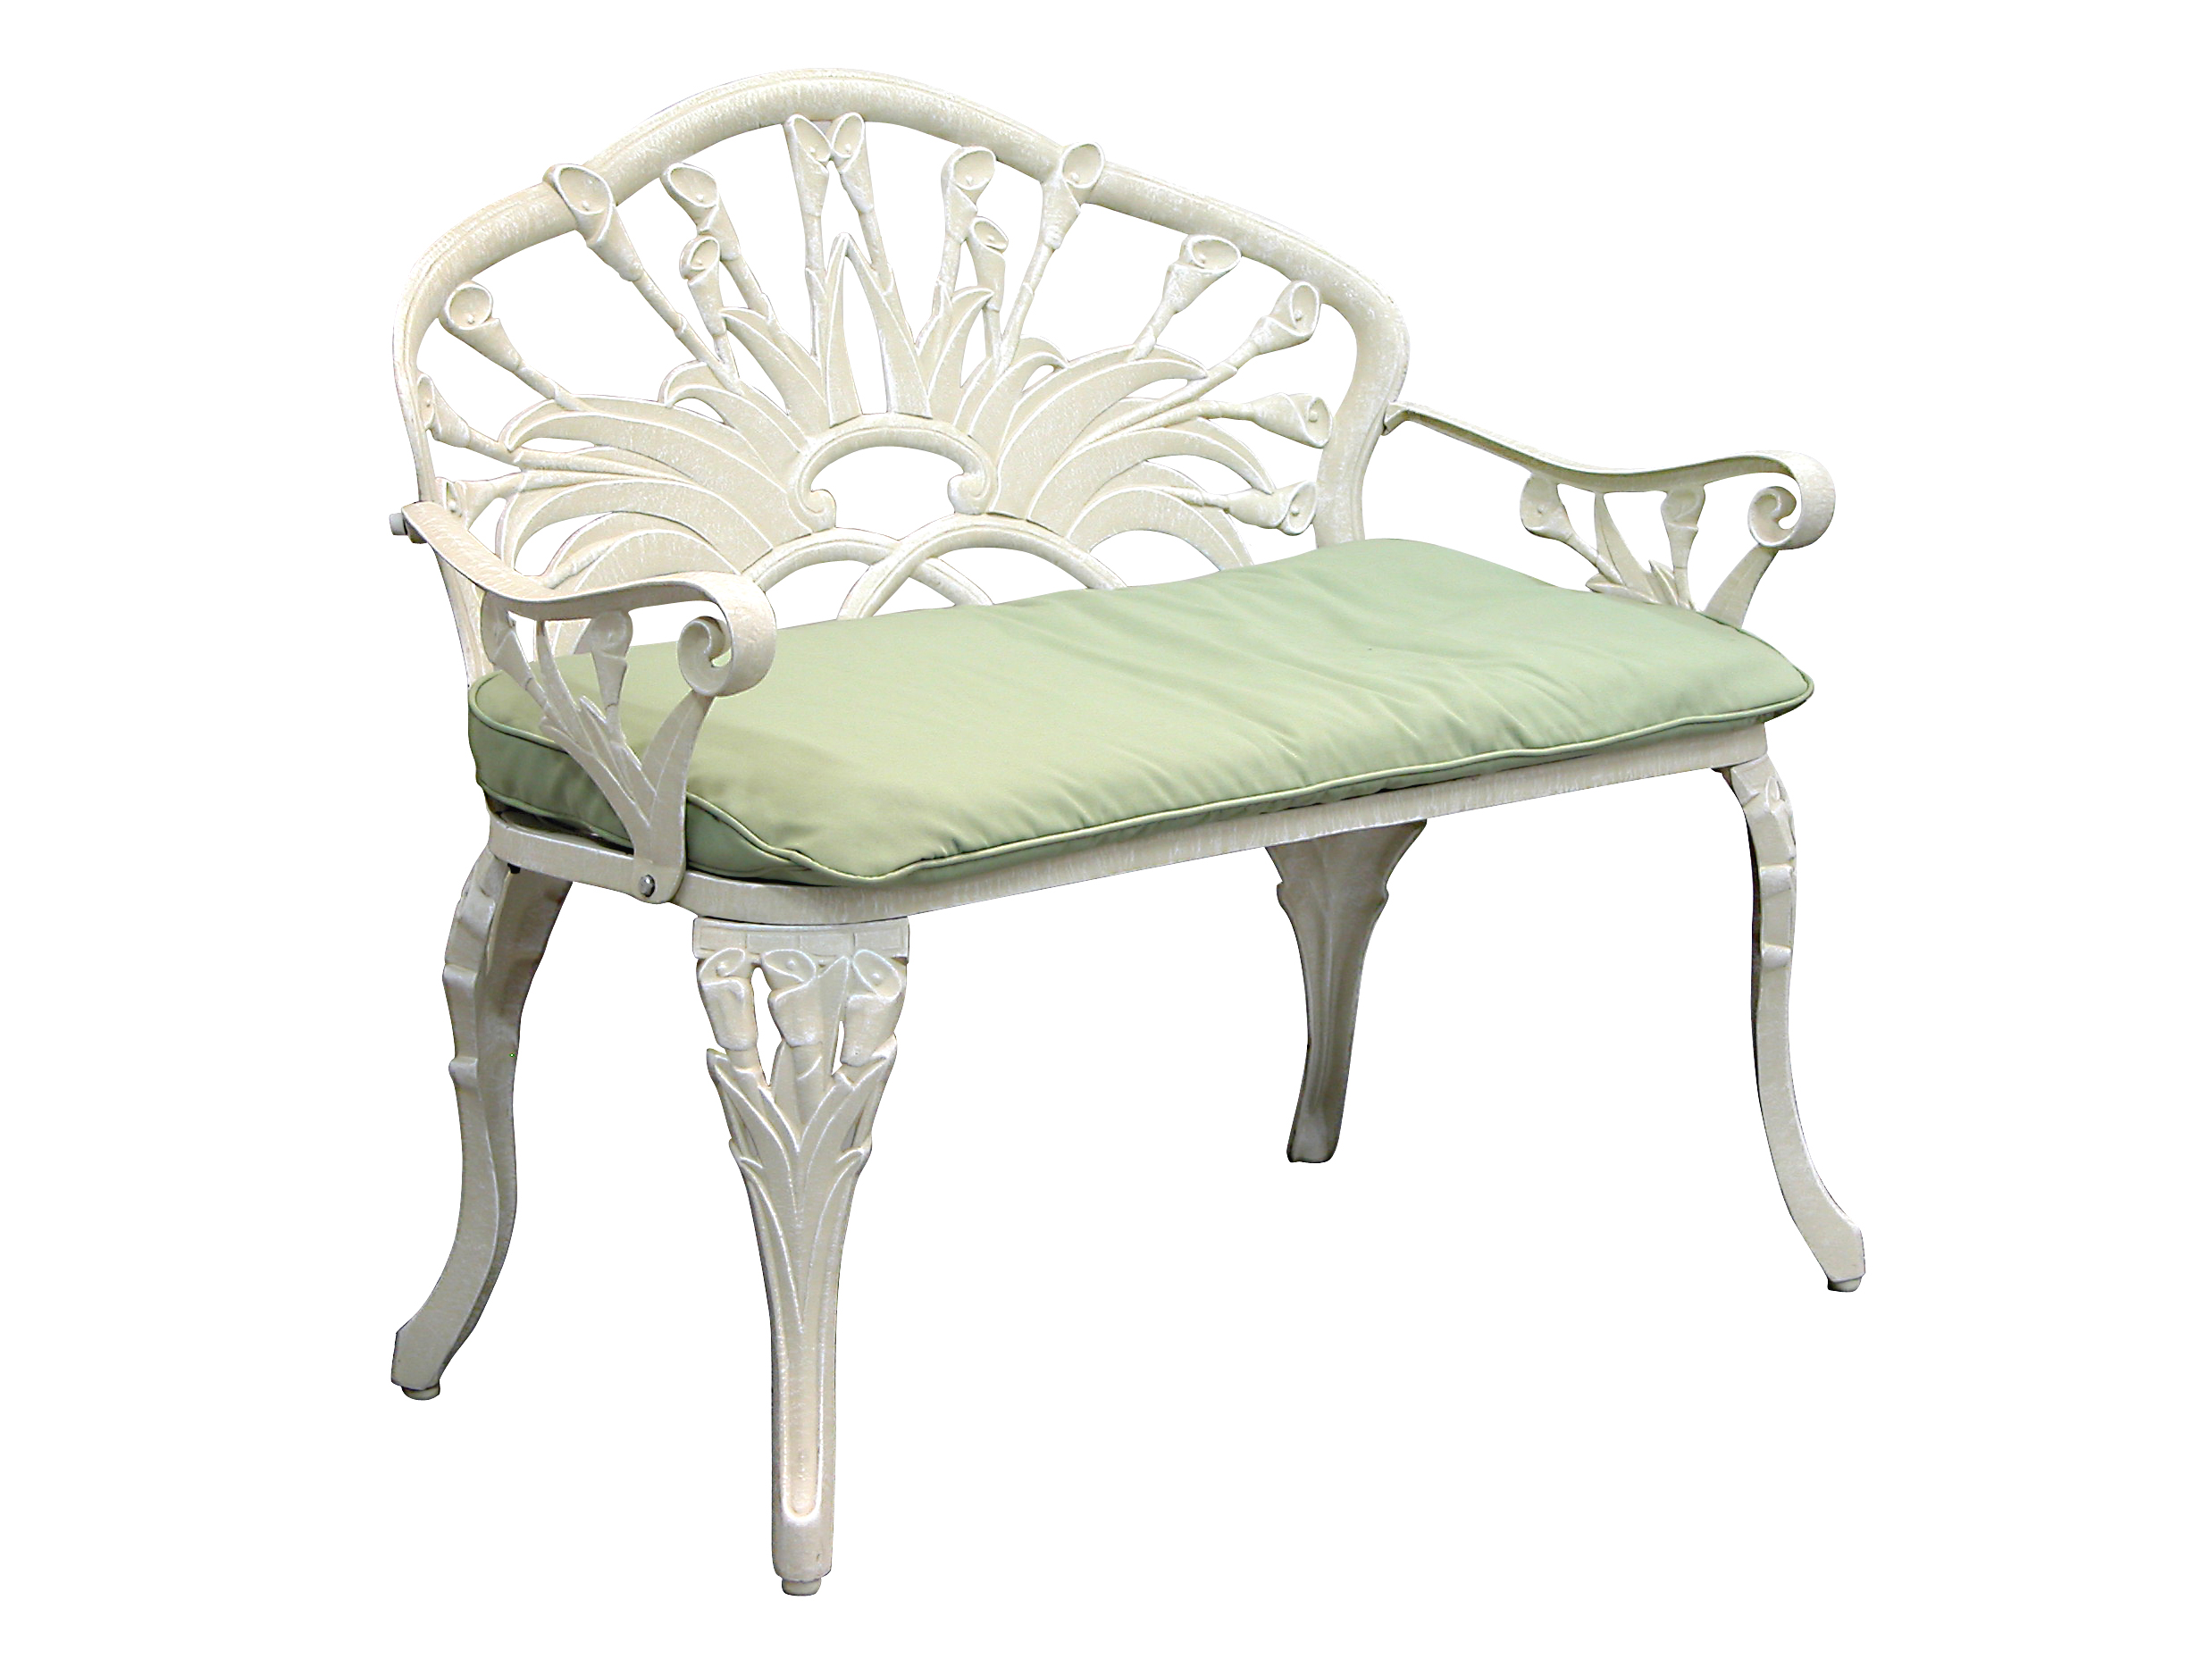 Patio Furniture Bench Cast Aluminum Iron Loveseat Calla Lily